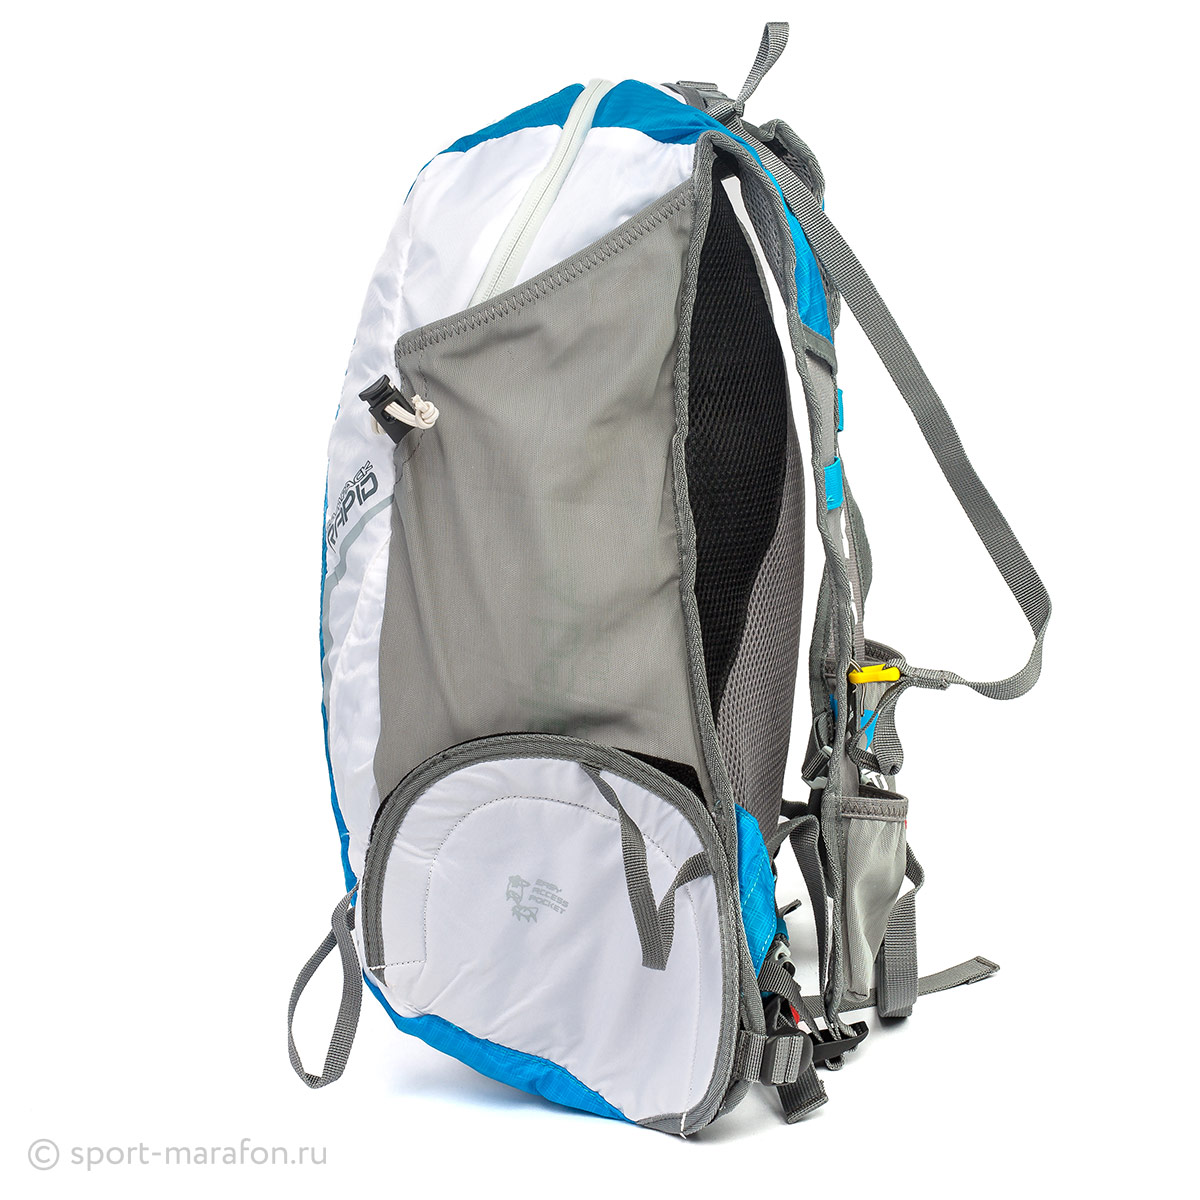 Рюкзак Camp Rapid 20 White/Light Blue - Фото 4 большая